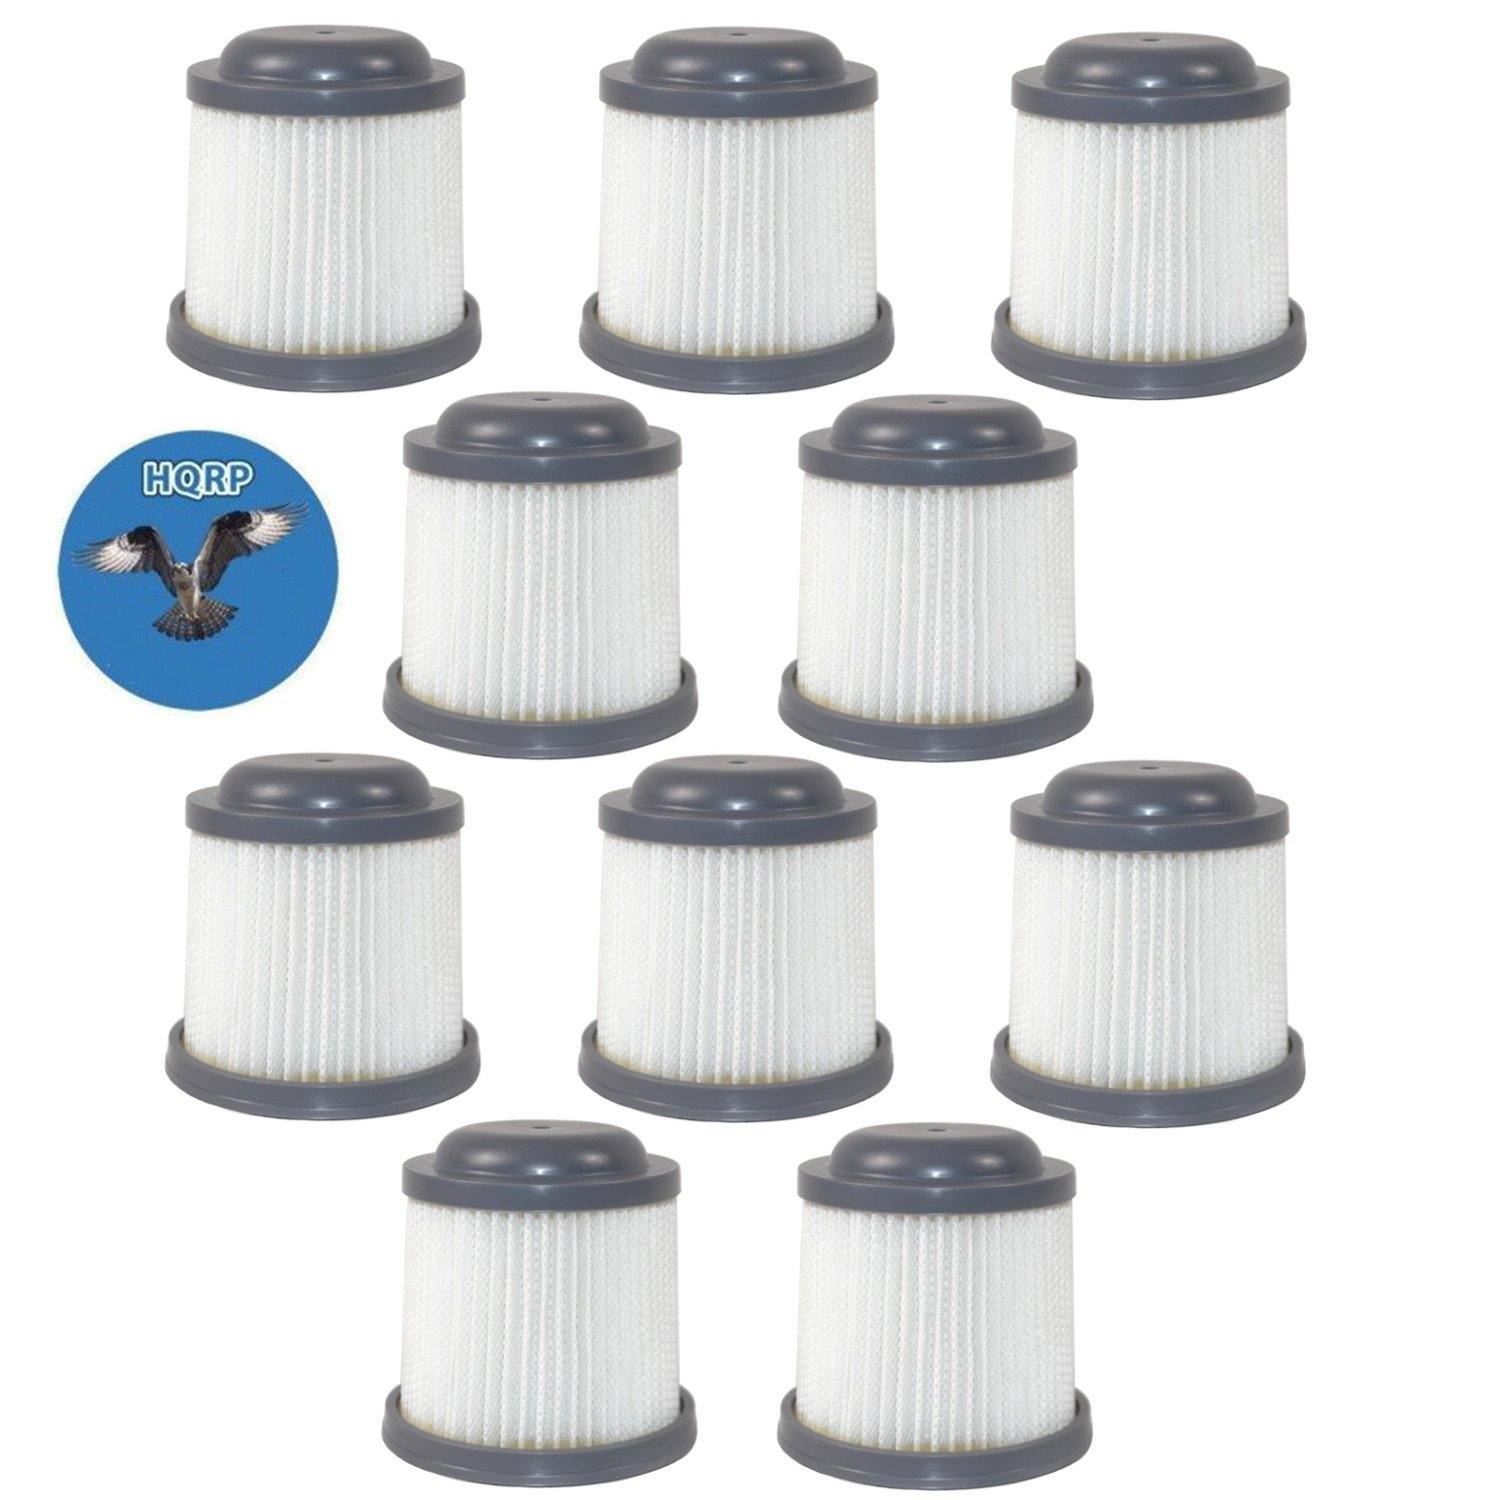 HQRP Washable Filter (10-Pack) for Black & Decker PVF110 90552433 90552433-01 PVF110R Replacement fits B&D Pivot Hand Vac Vacuums Coaster